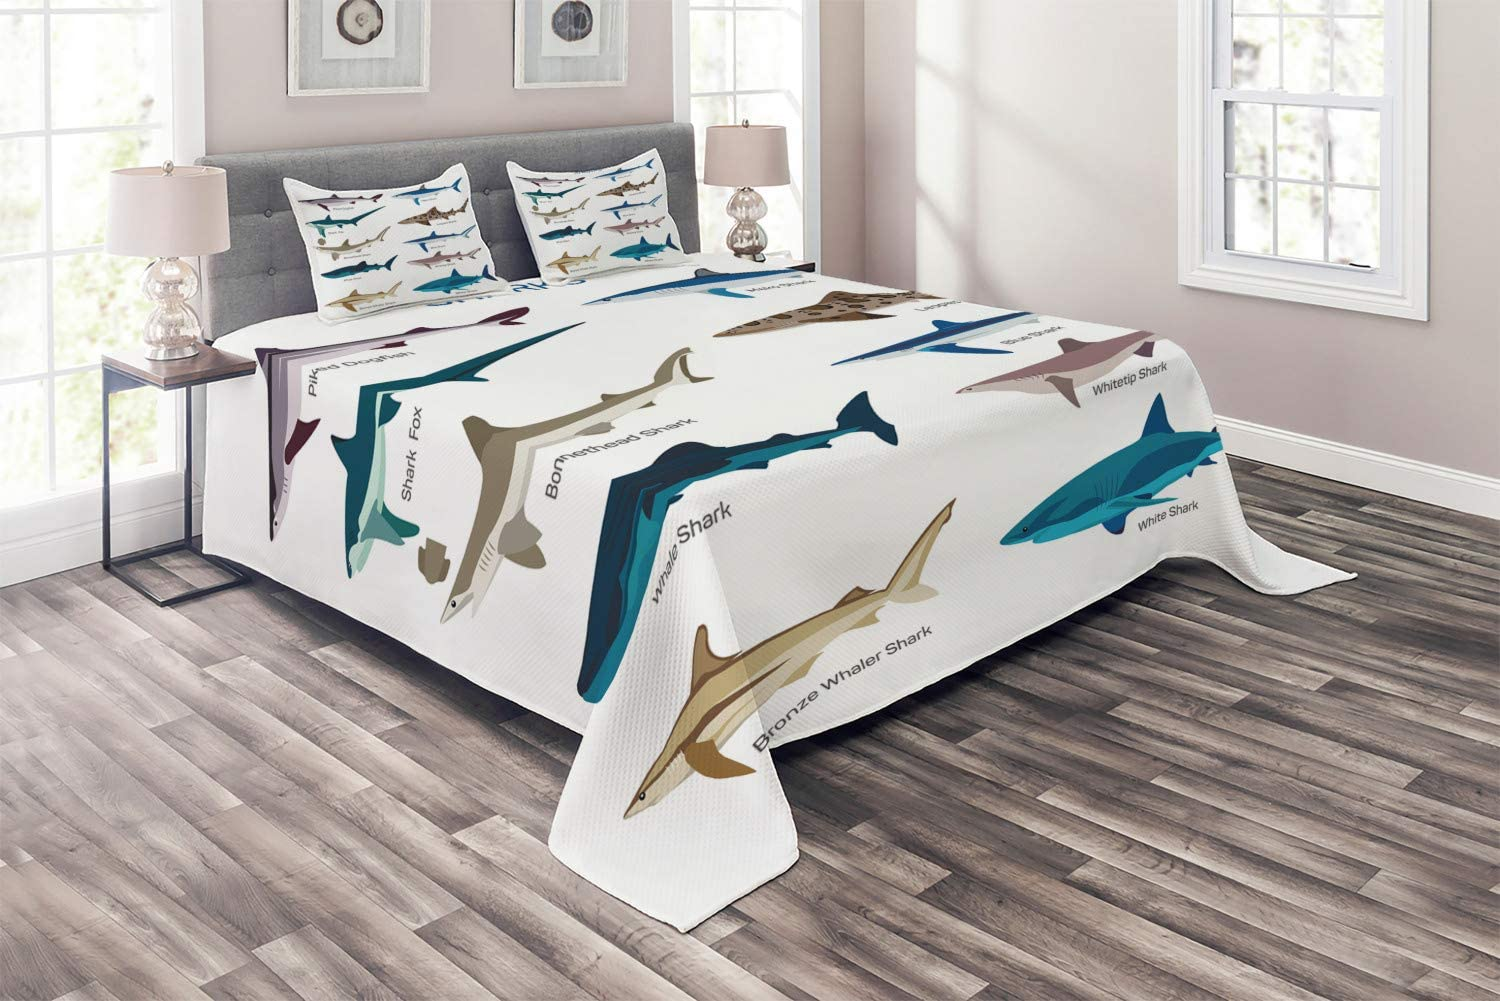 Ambesonne Shark Coverlet, Types of Sharks Pattern Whaler Piked Dogfish Whlae Shark Maritime Design Nautical, 3 Piece Decorative Quilted Bedspread Set with 2 Pillow Shams, Queen Size, Blue Tan